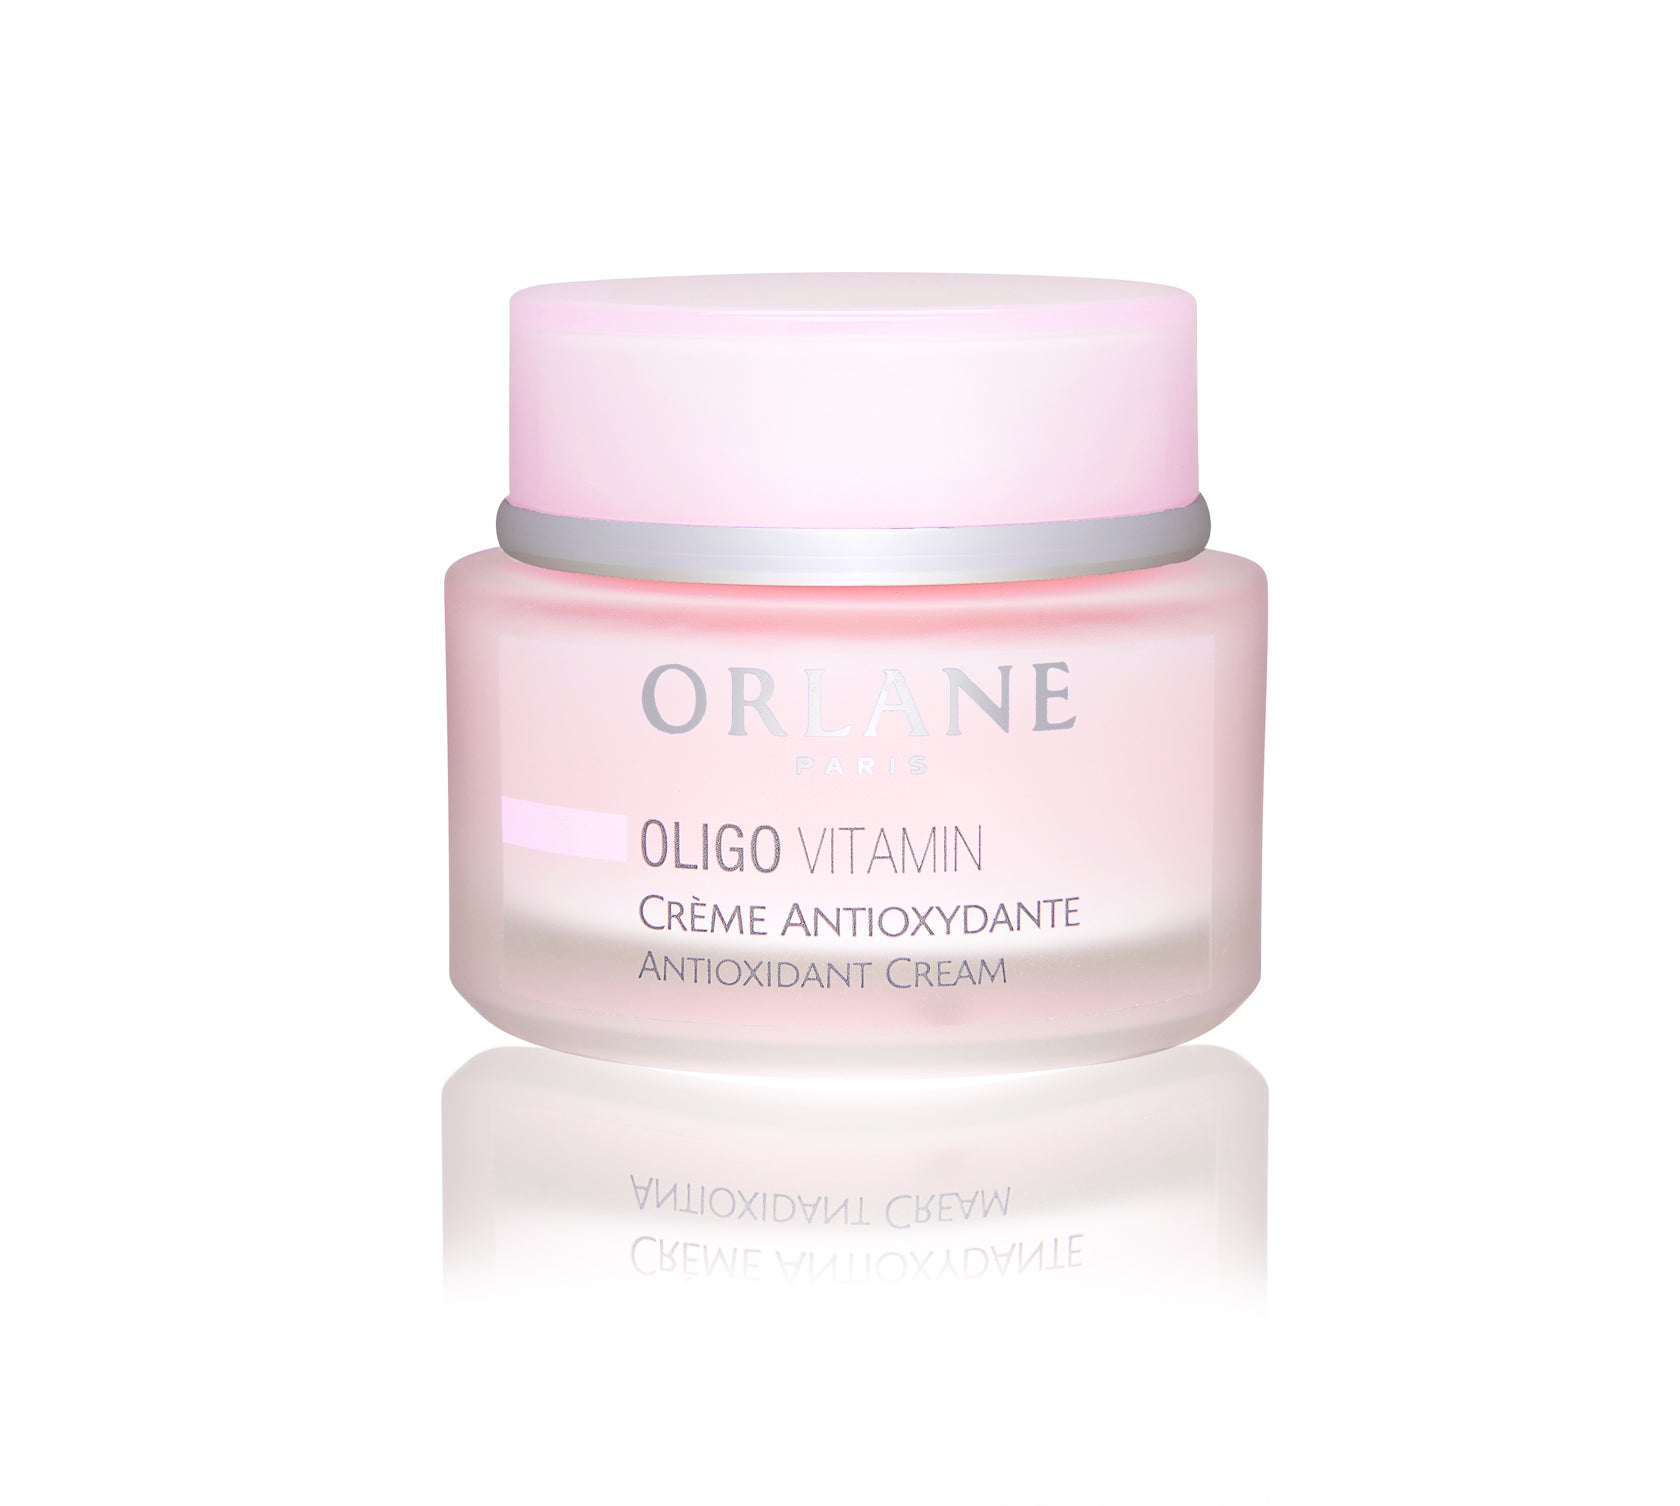 Oligo Vitamin Antioxidant Cream